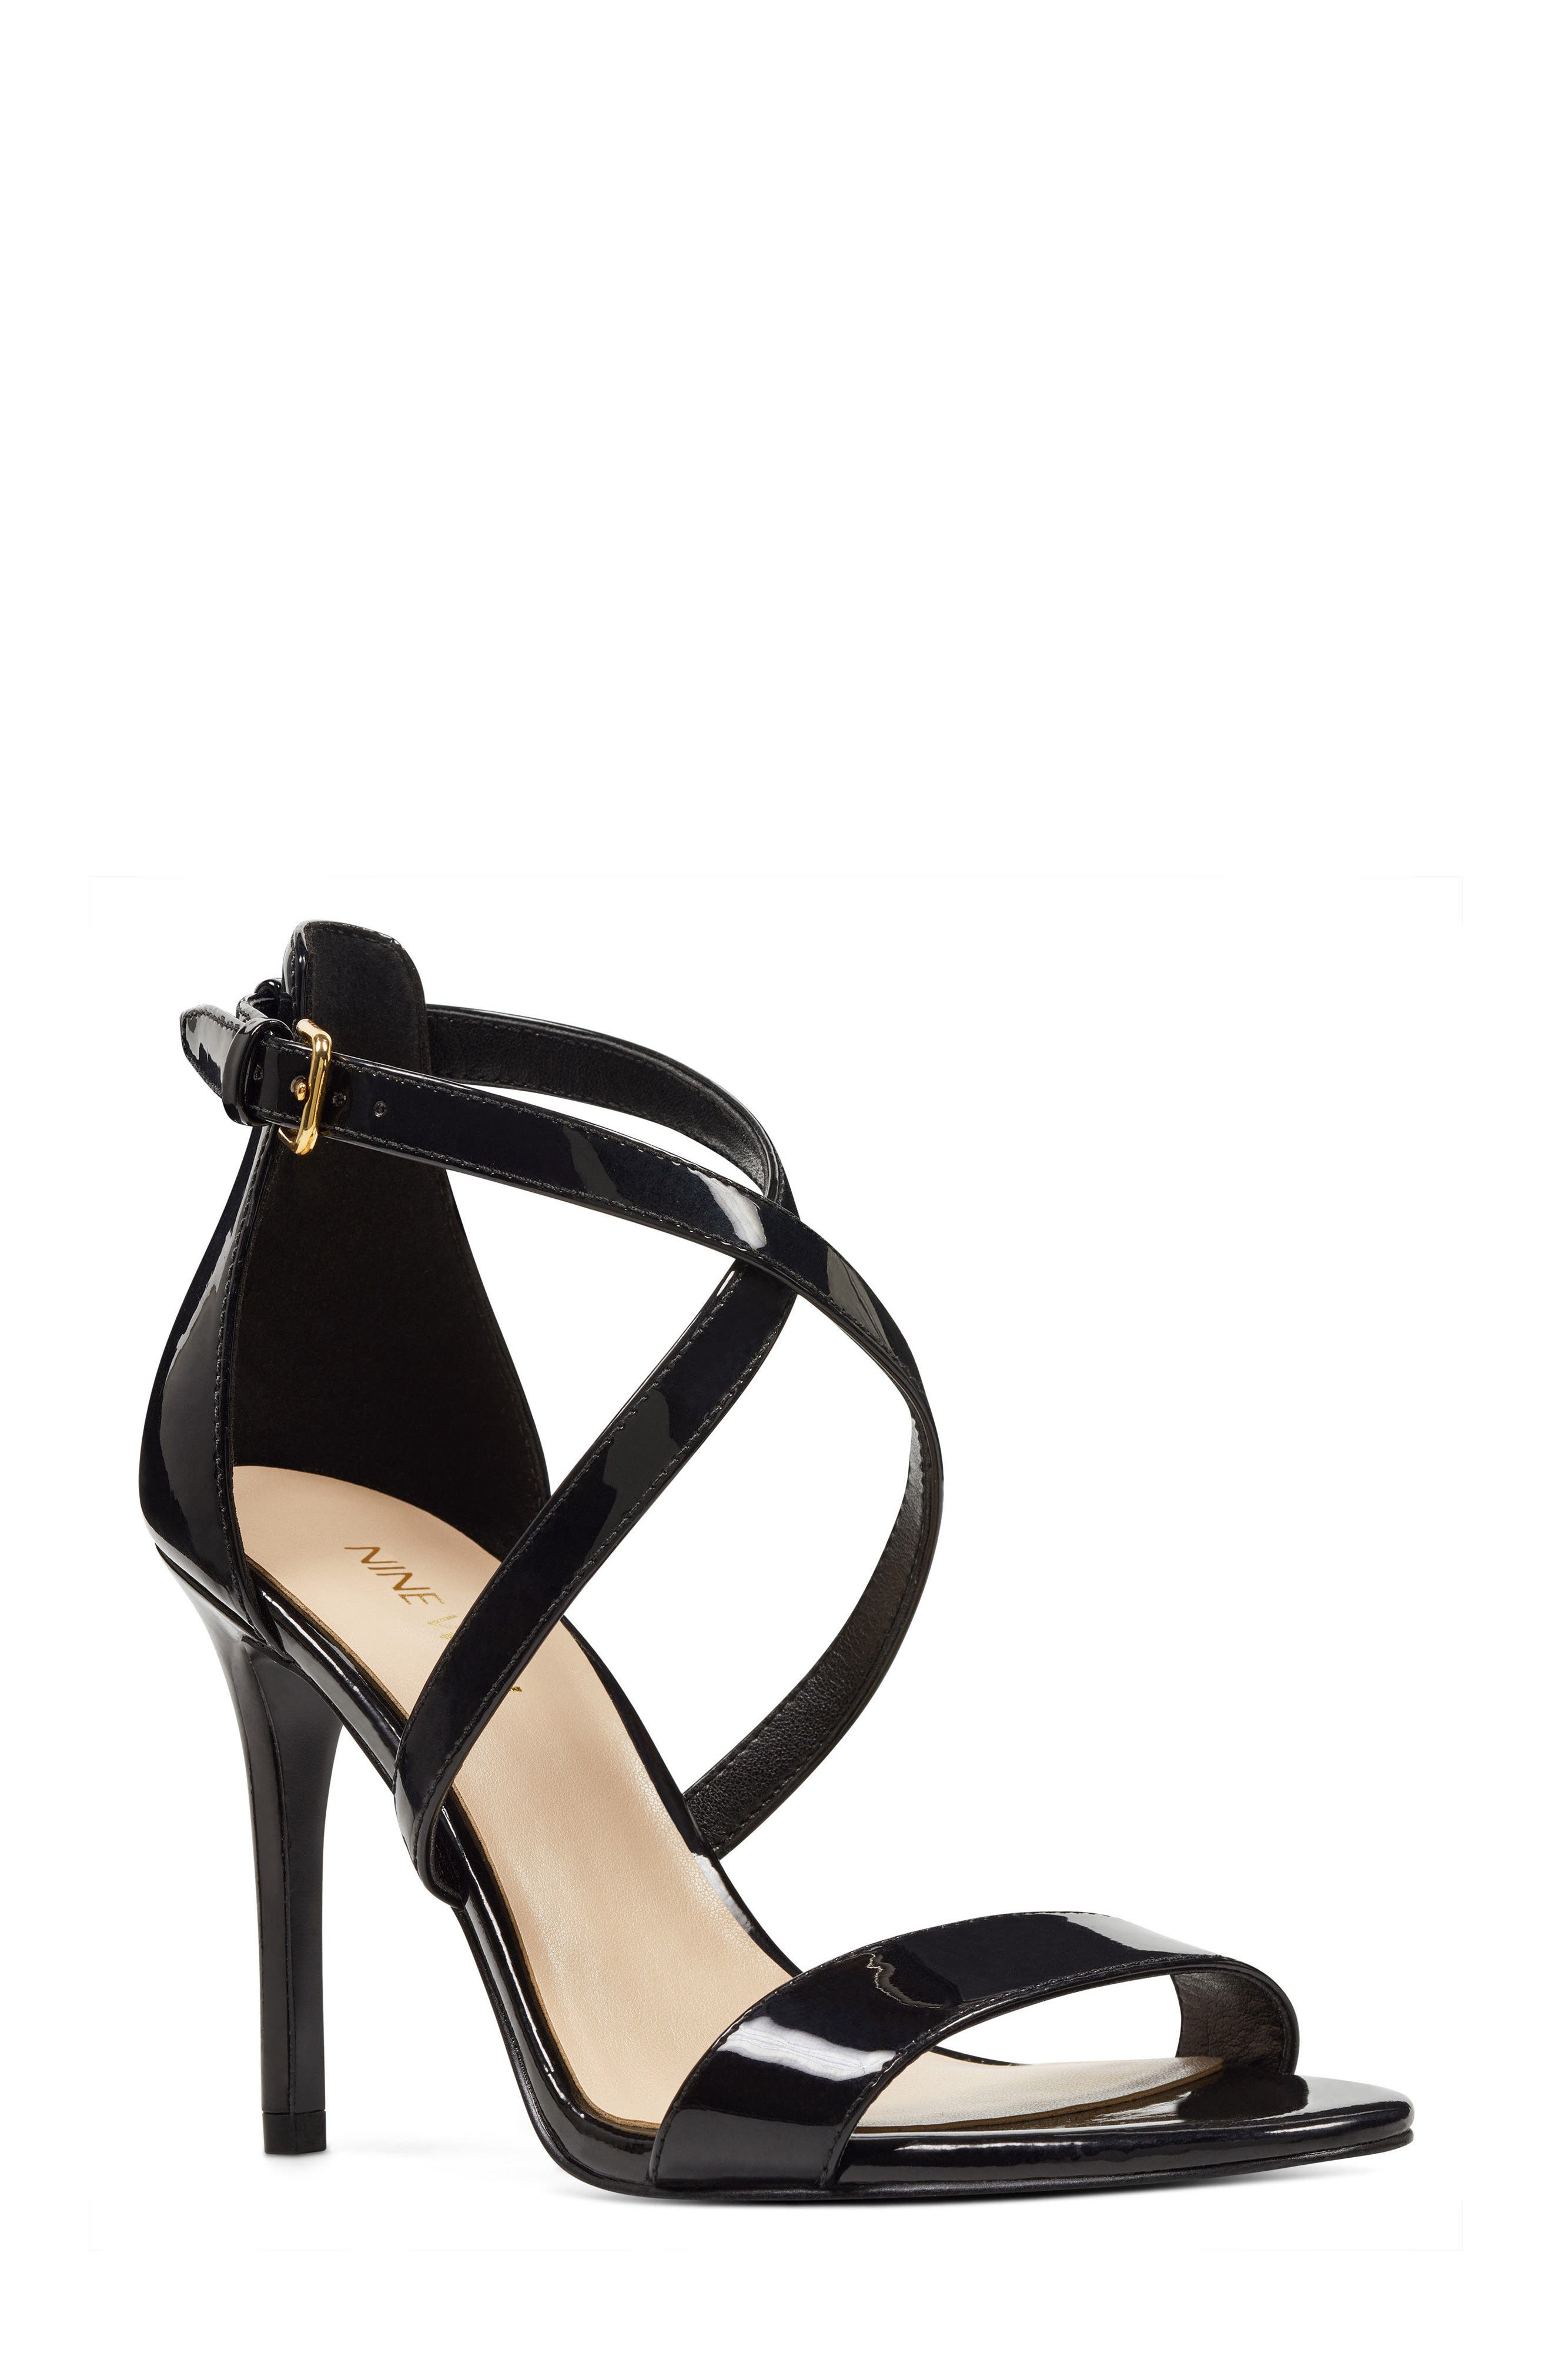 Mydebut Strappy Sandal,                             Main thumbnail 1, color,                             BLACK FAUX LEATHER